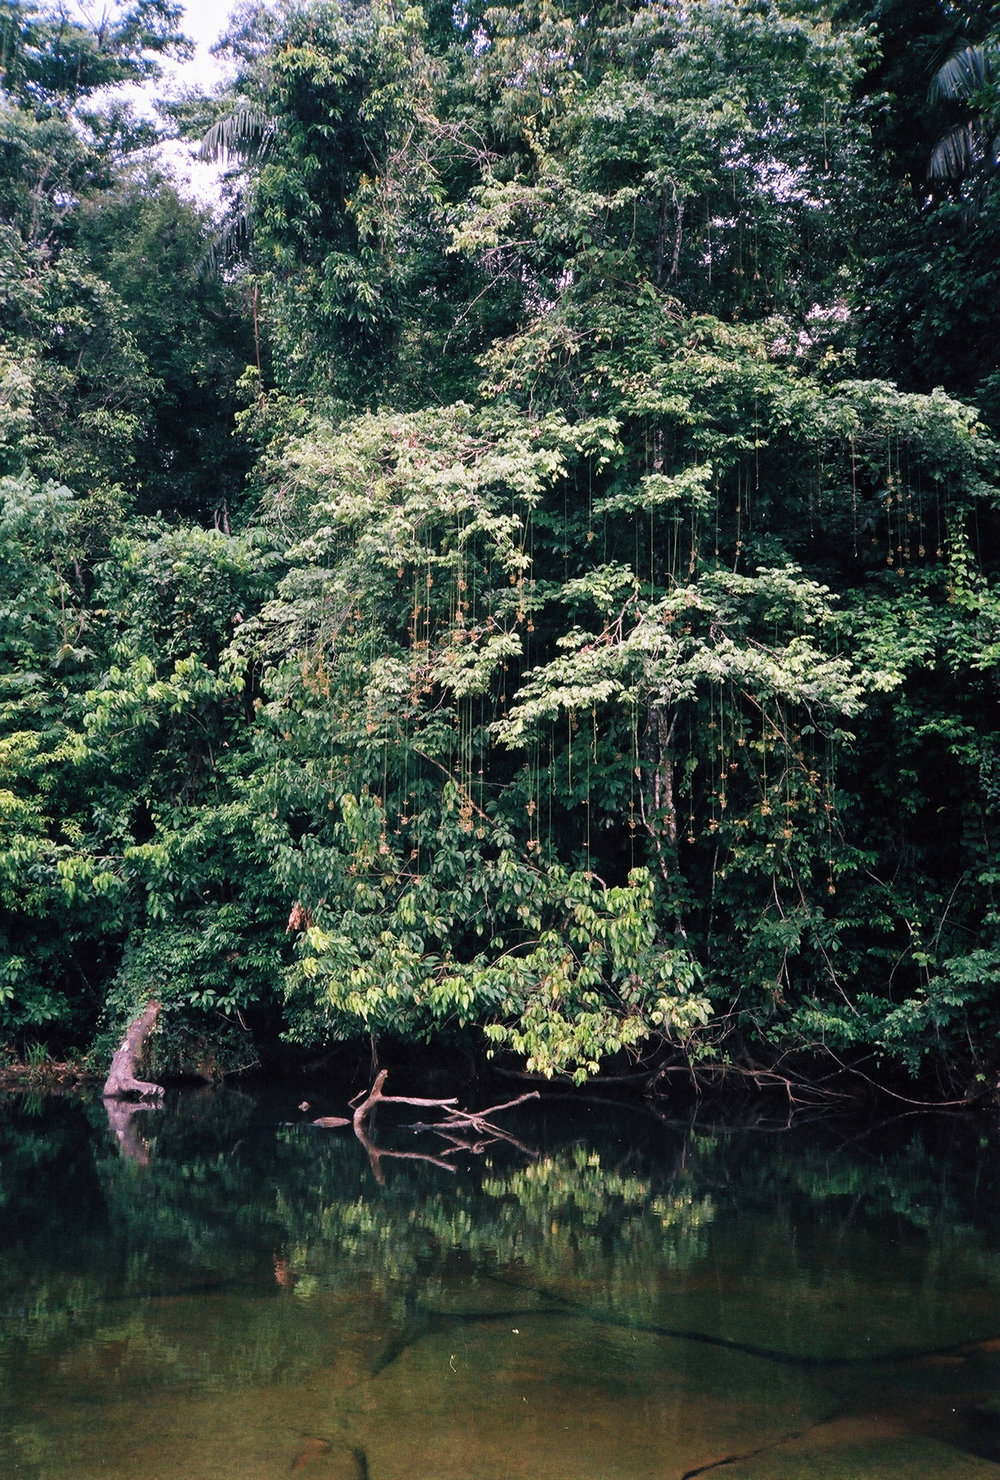 95% of Suriname is rainforest, making it the most green-filled country in the world.  - –––––––––––––––––